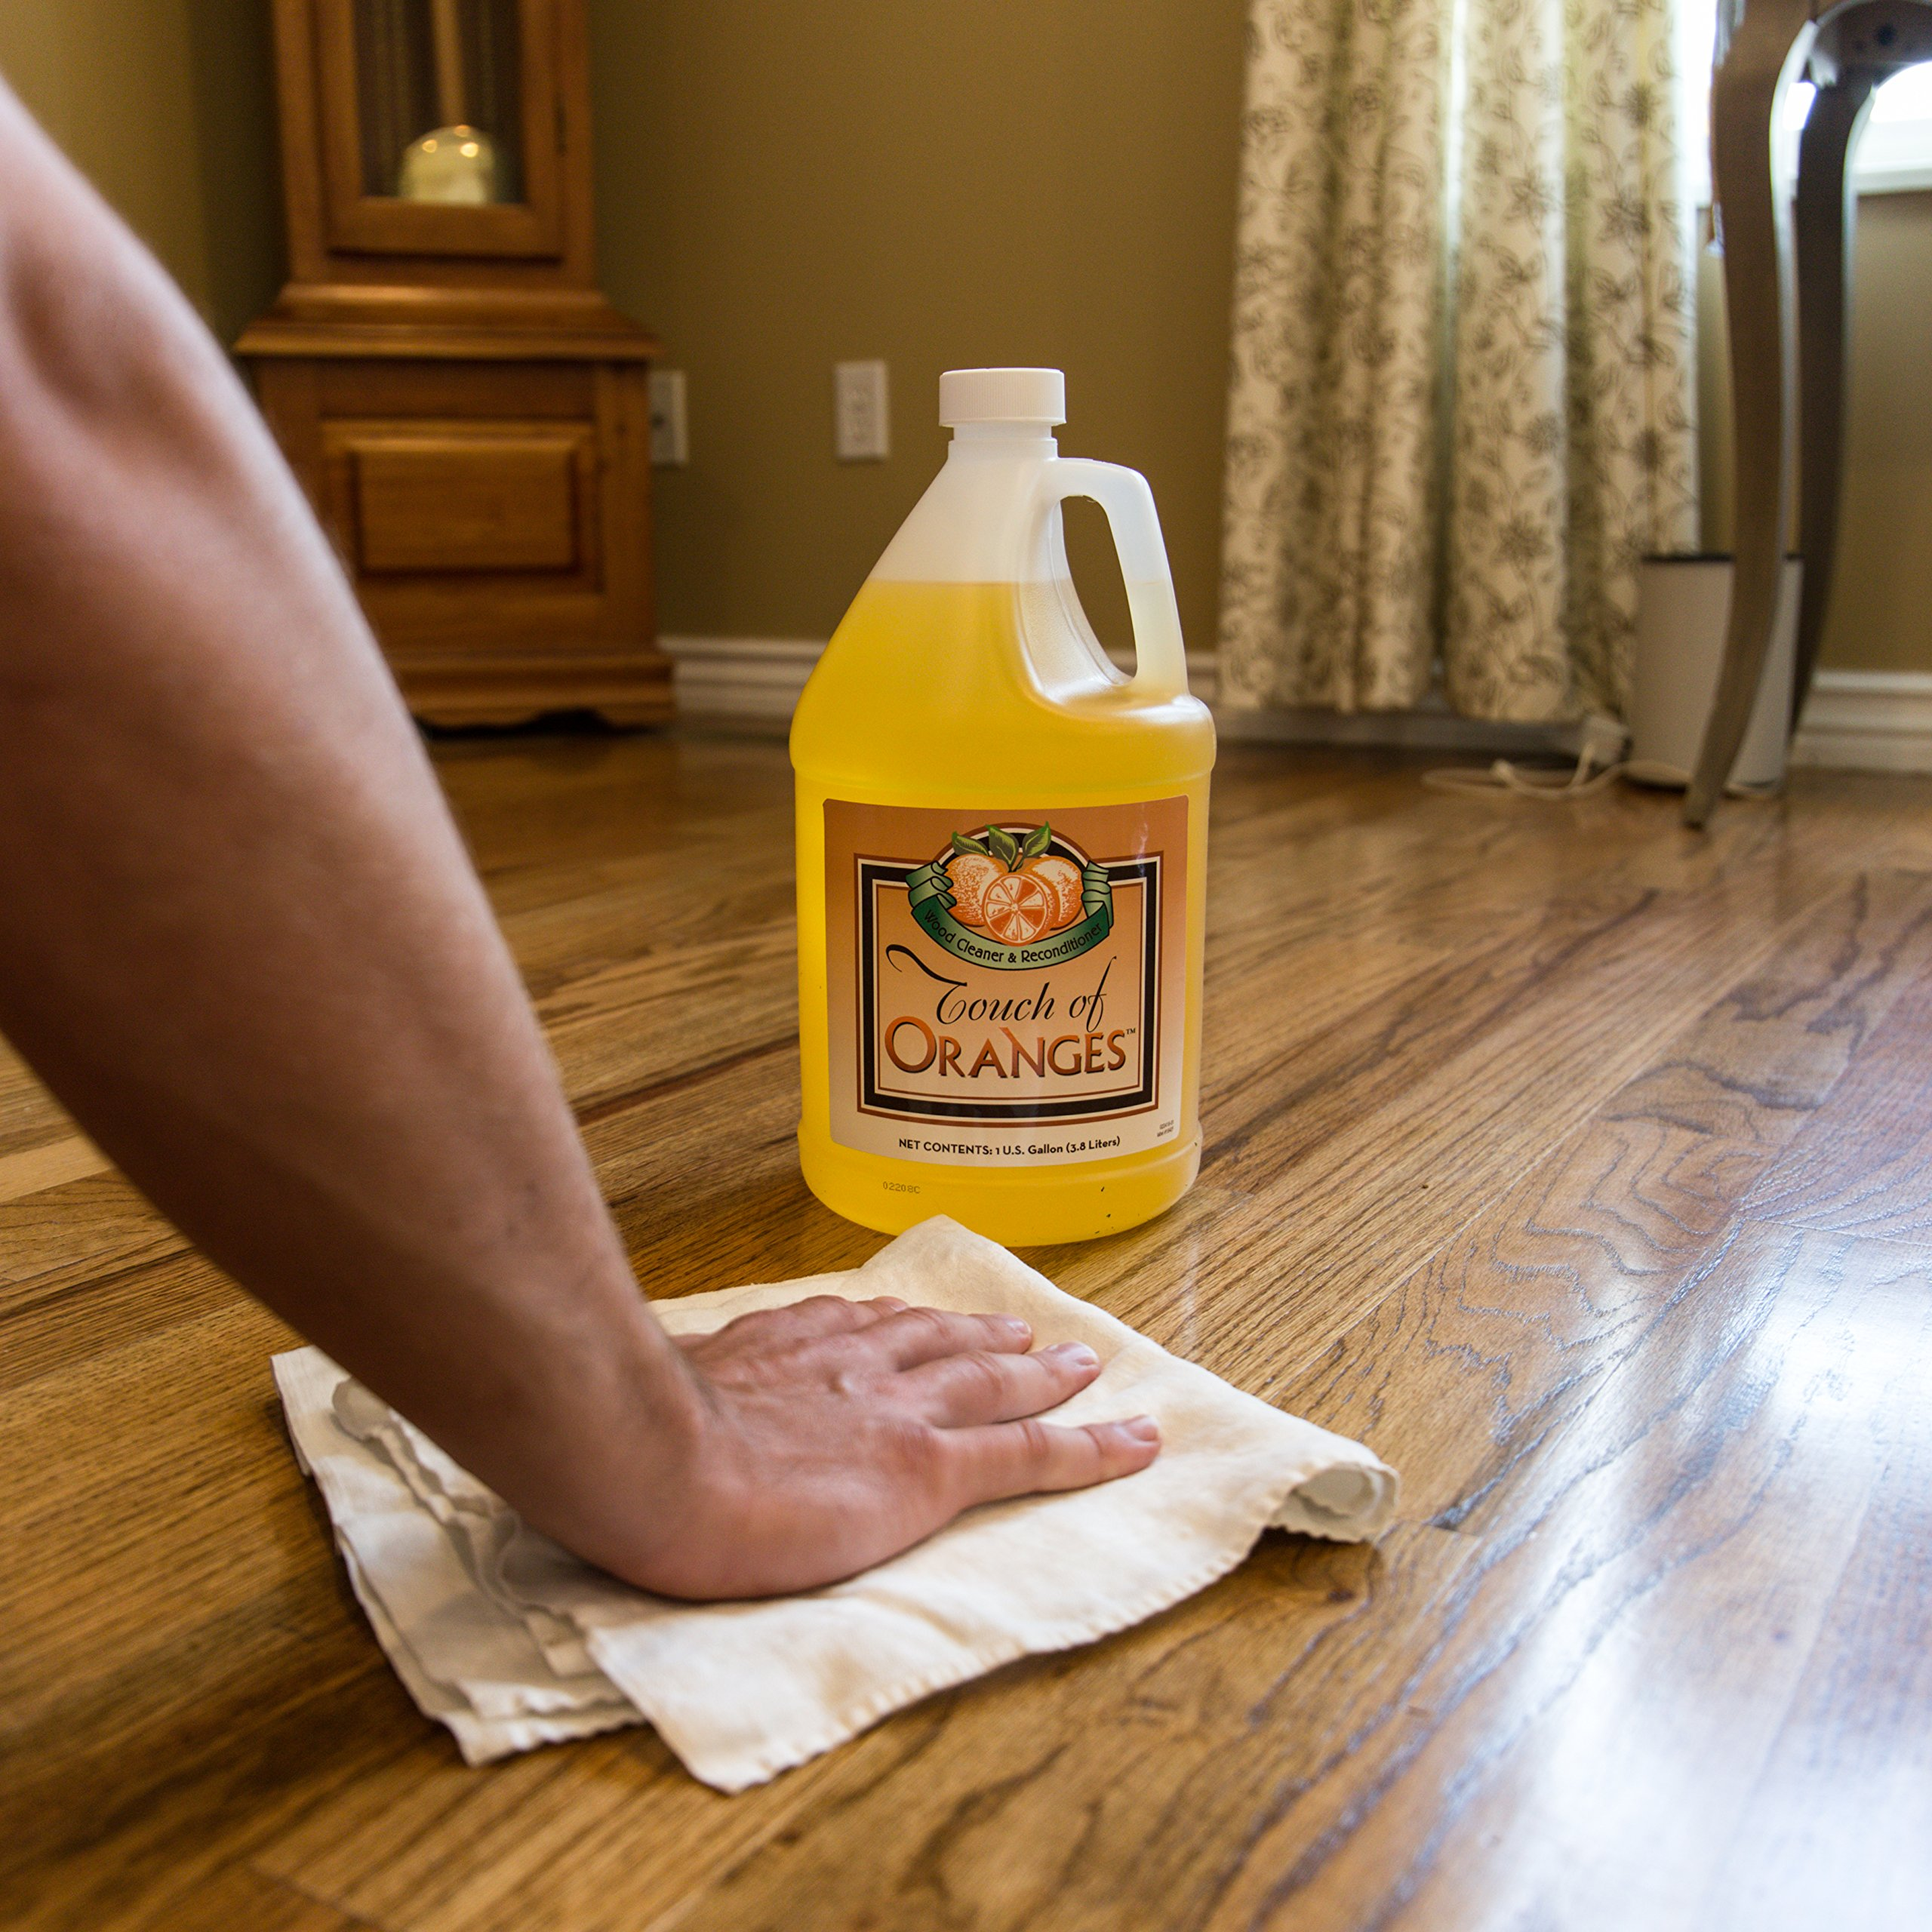 Wood Cleaner and Restorer for Hardwood Floor, Wood Furniture and Wood Cabinet Cleaner with Orange Oil (Gallon) by Touch Of Oranges (Image #3)